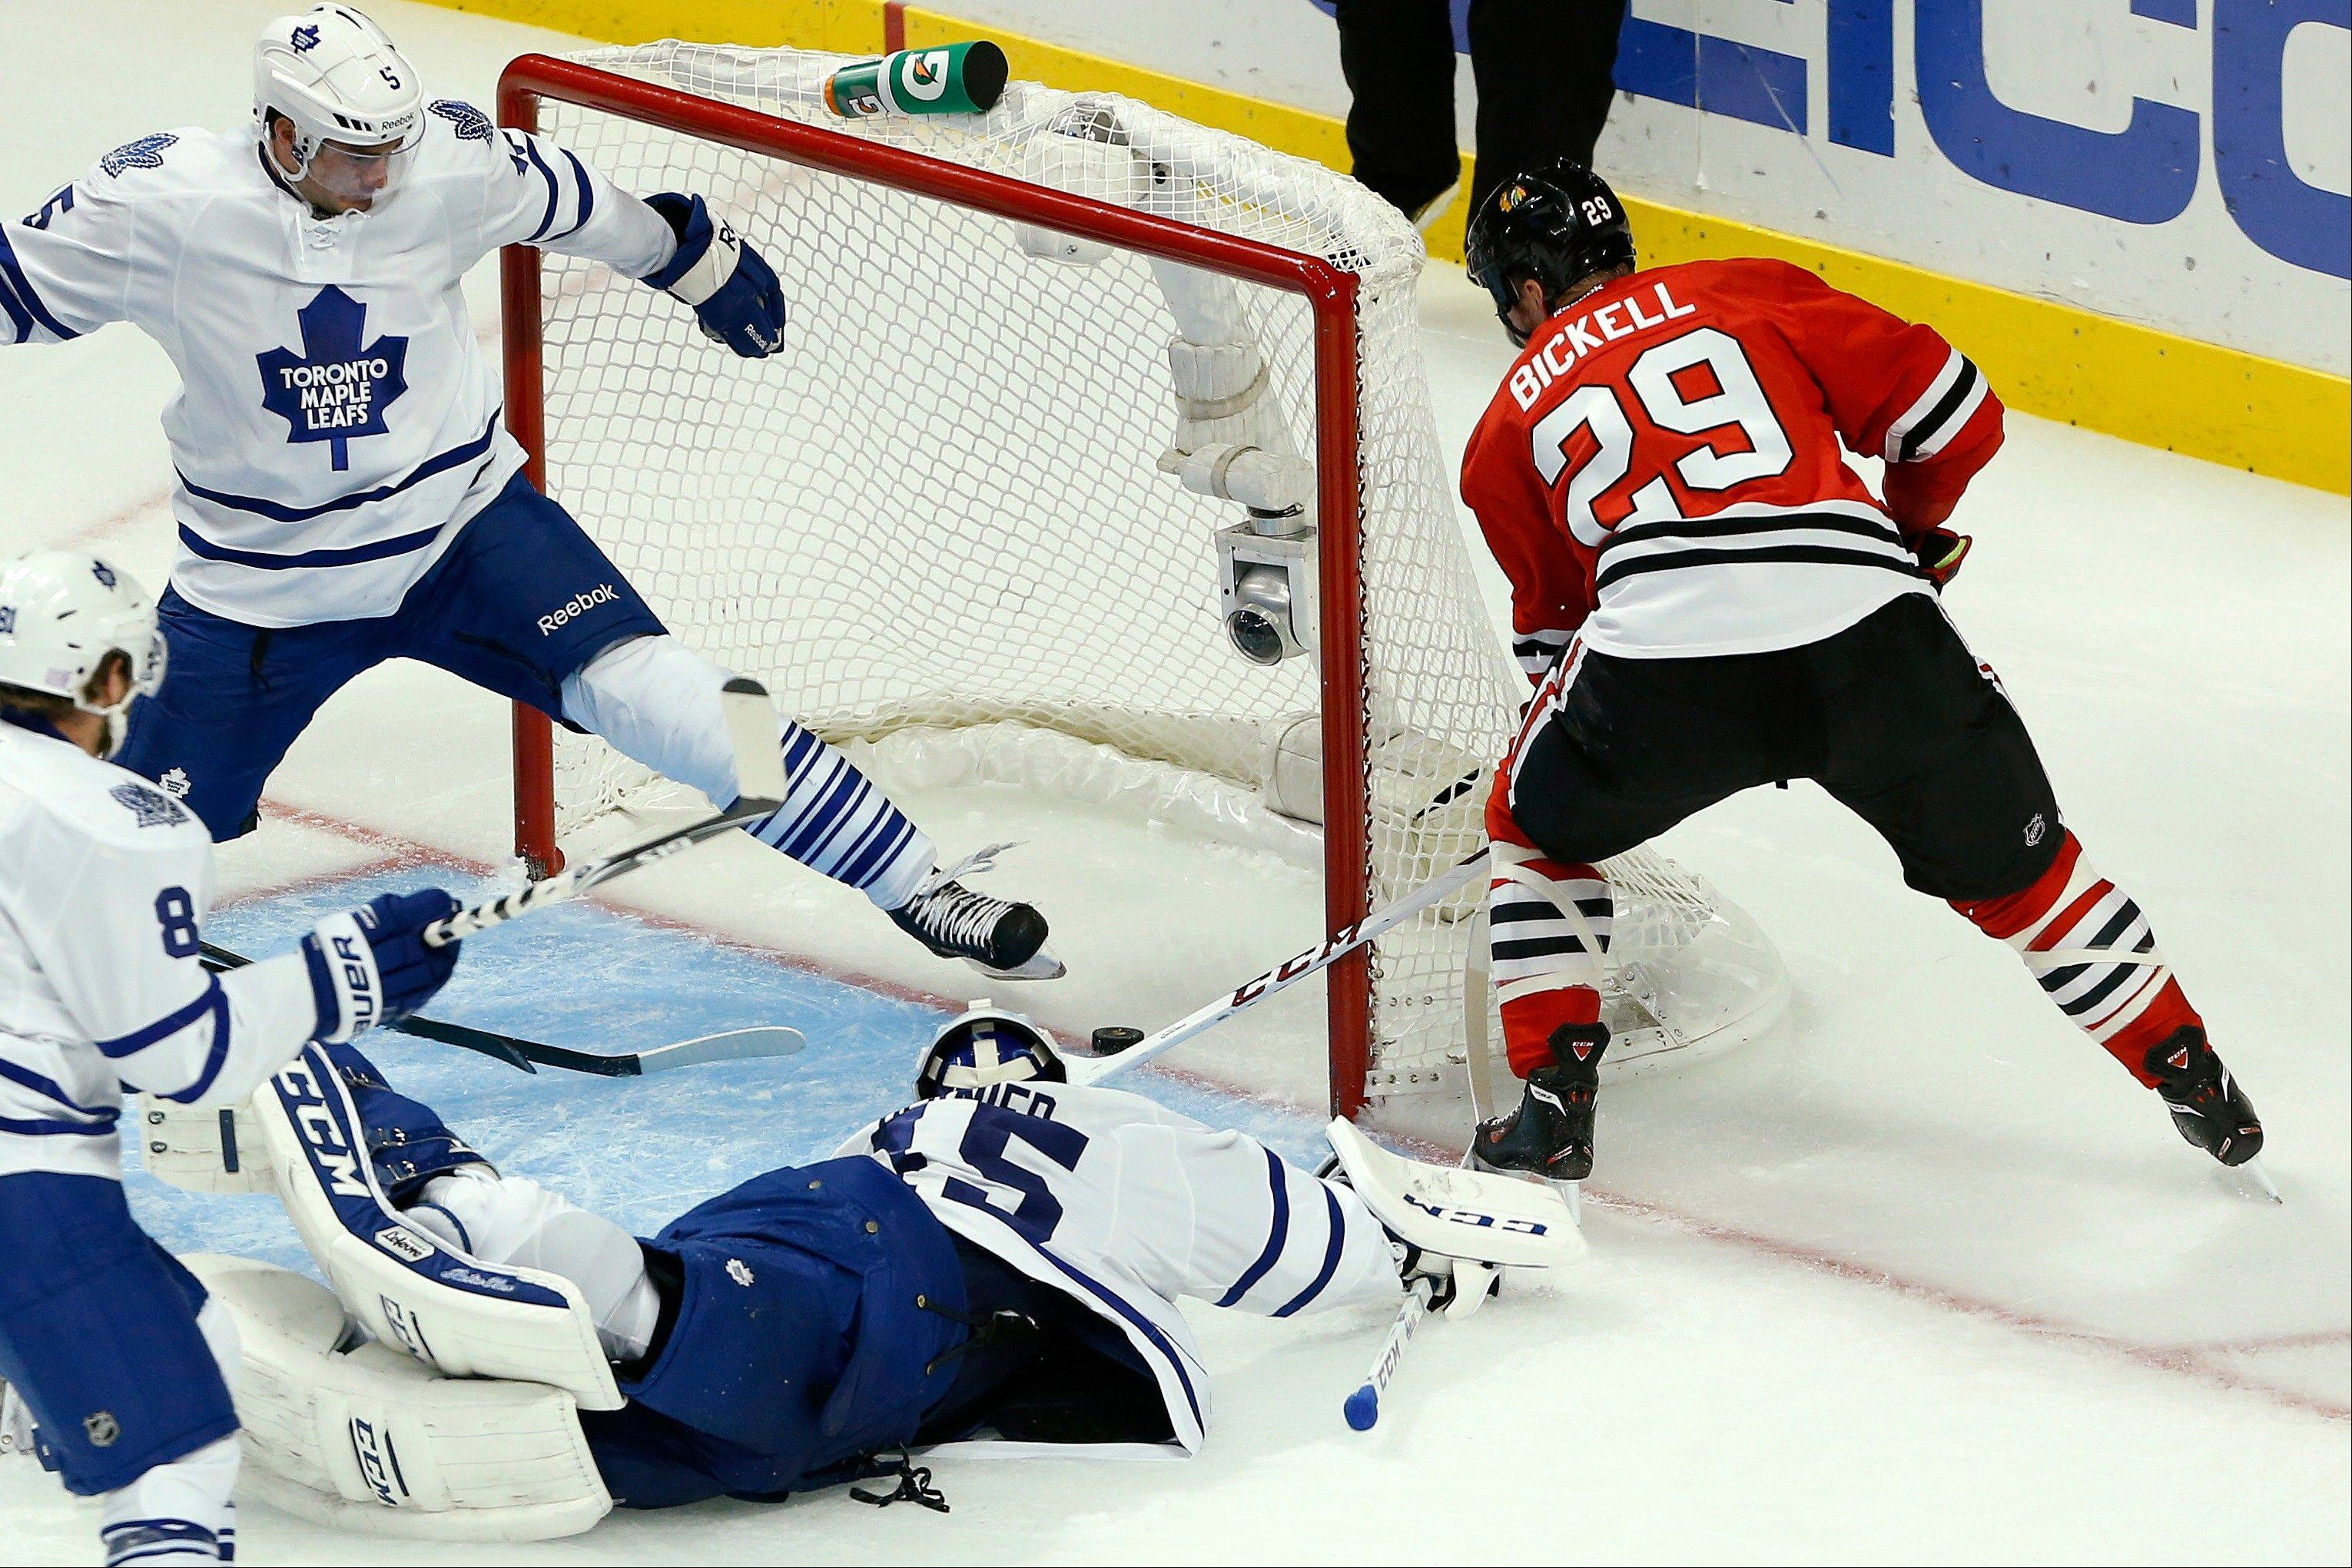 Blackhawks left wing Bryan Bickell (29) scores a goal past Toronto Maple Leafs goalie Jonathan Bernier (45) and defenseman Paul Ranger, top left, during the second period Saturday in Chicago.